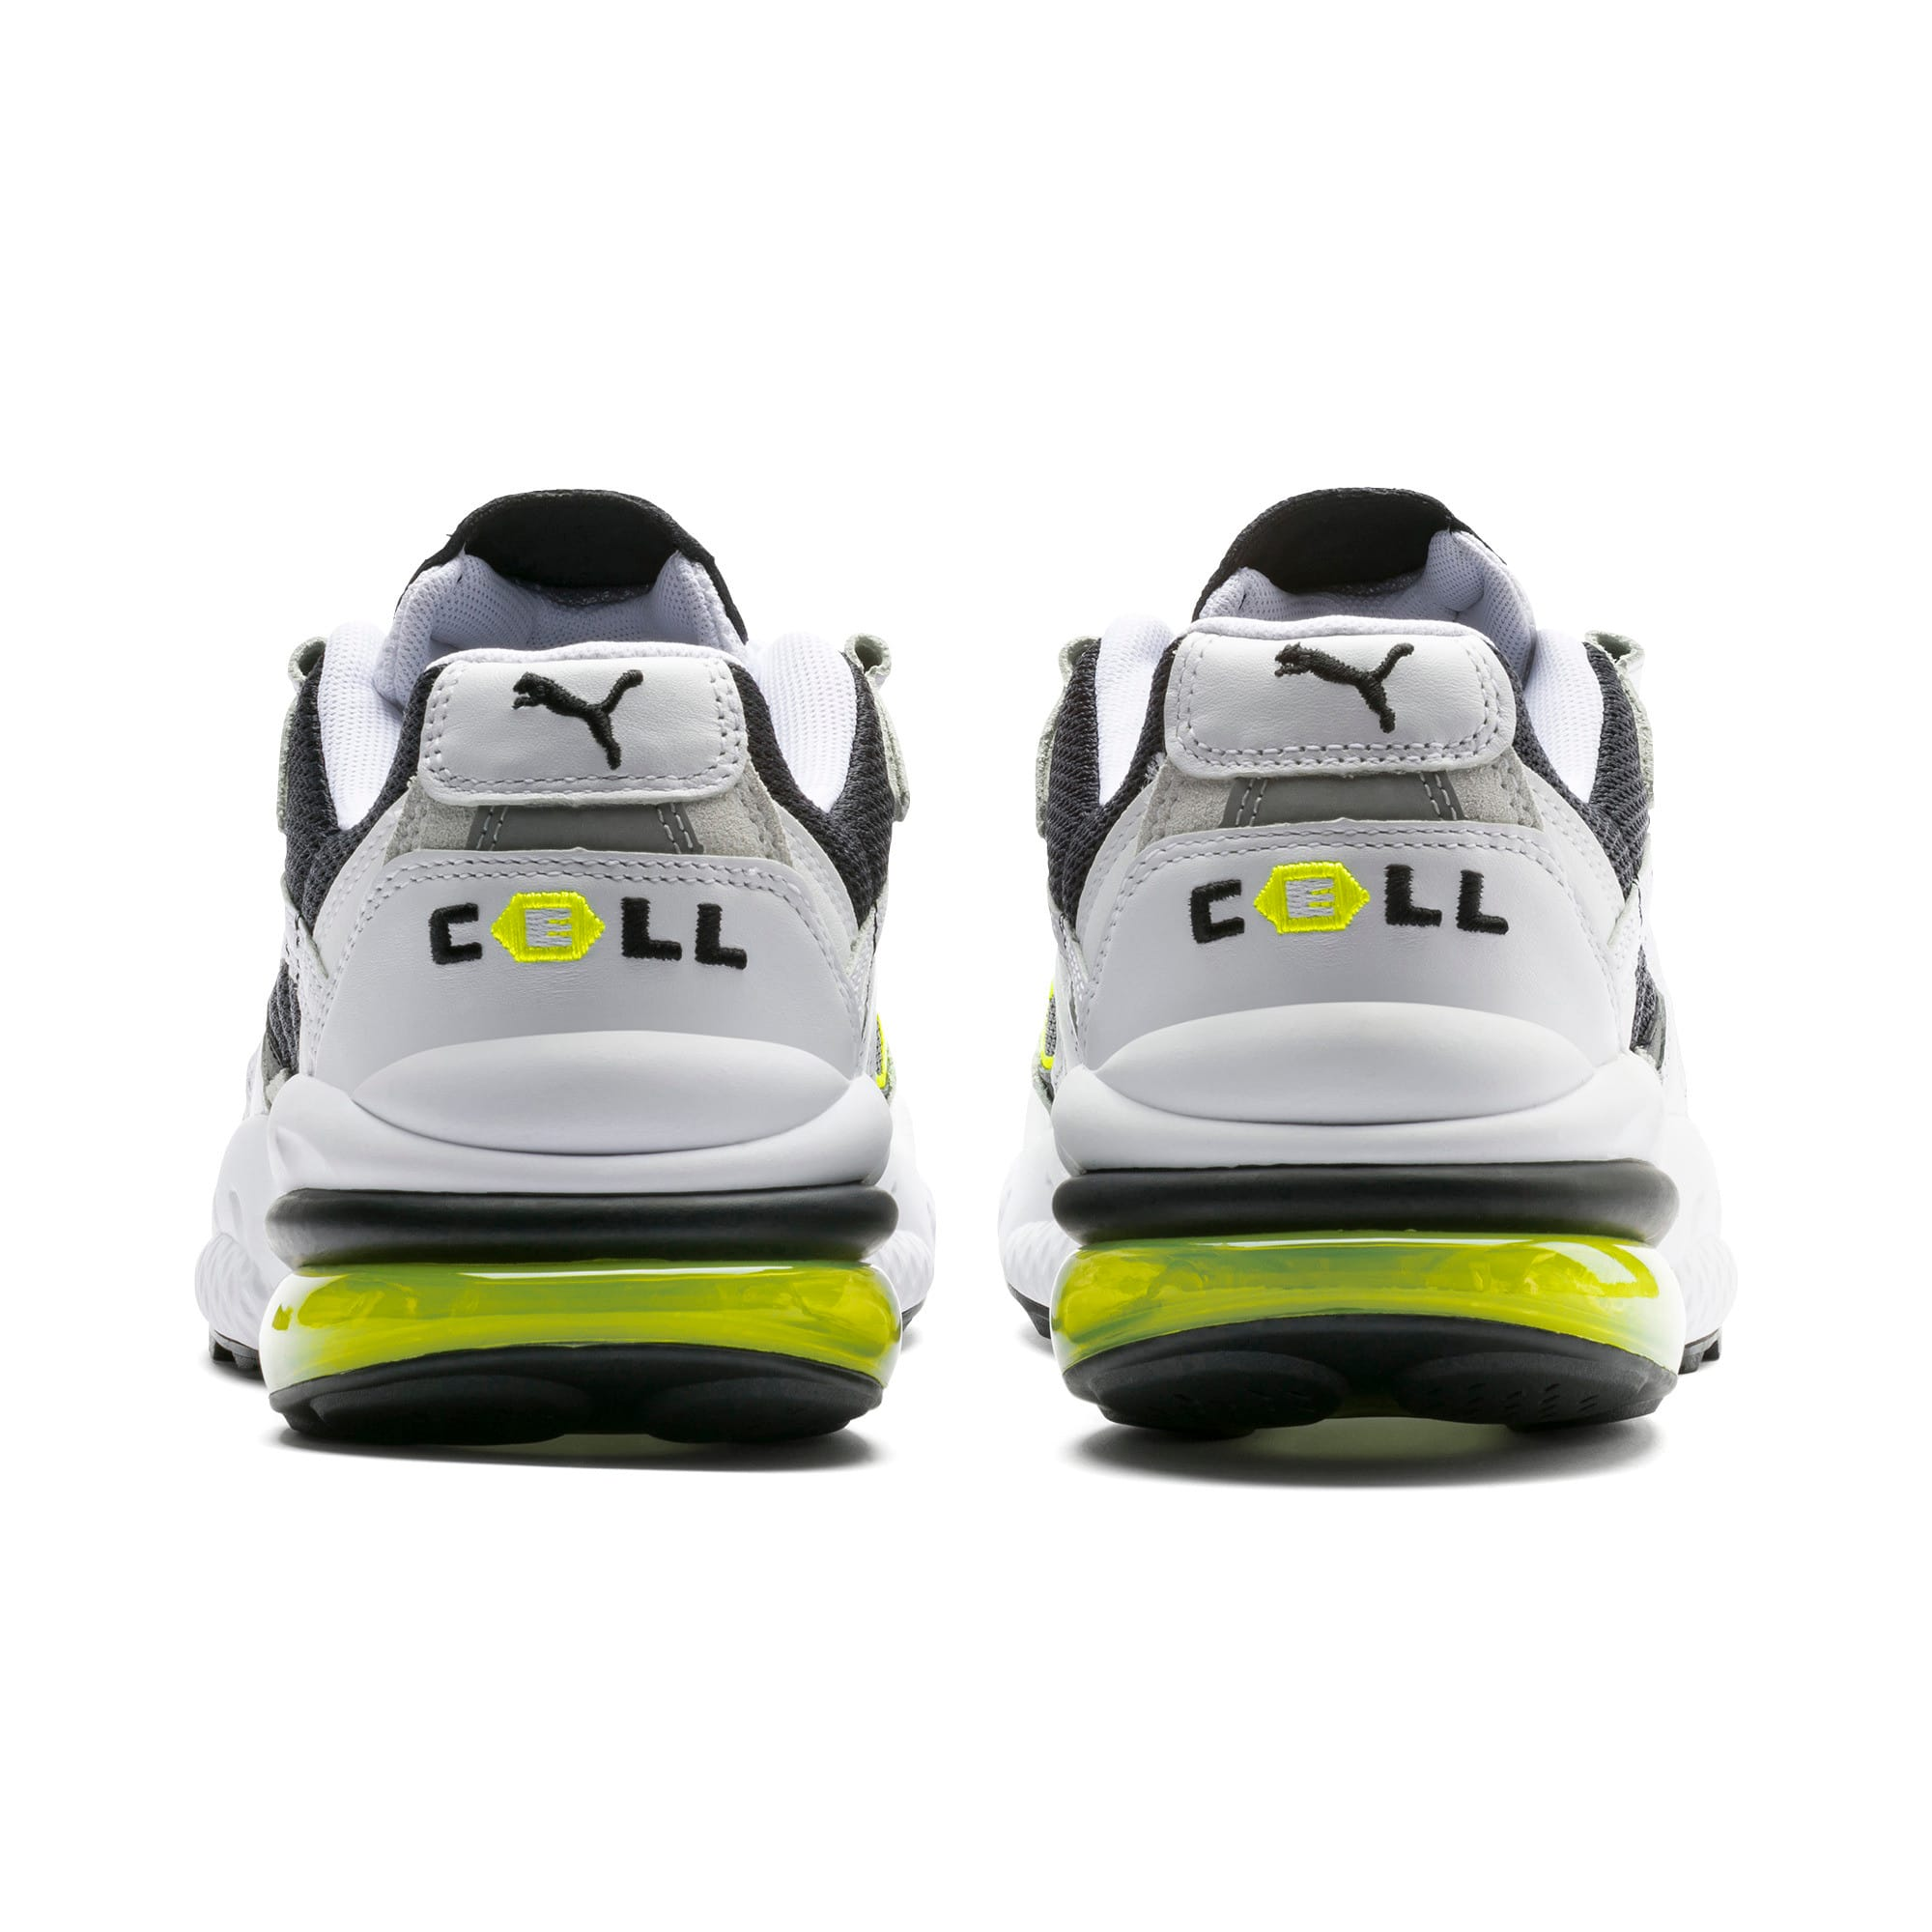 Thumbnail 3 of CELL Venom Hype Trainers, Pu Black-P White-Yell Alert, medium